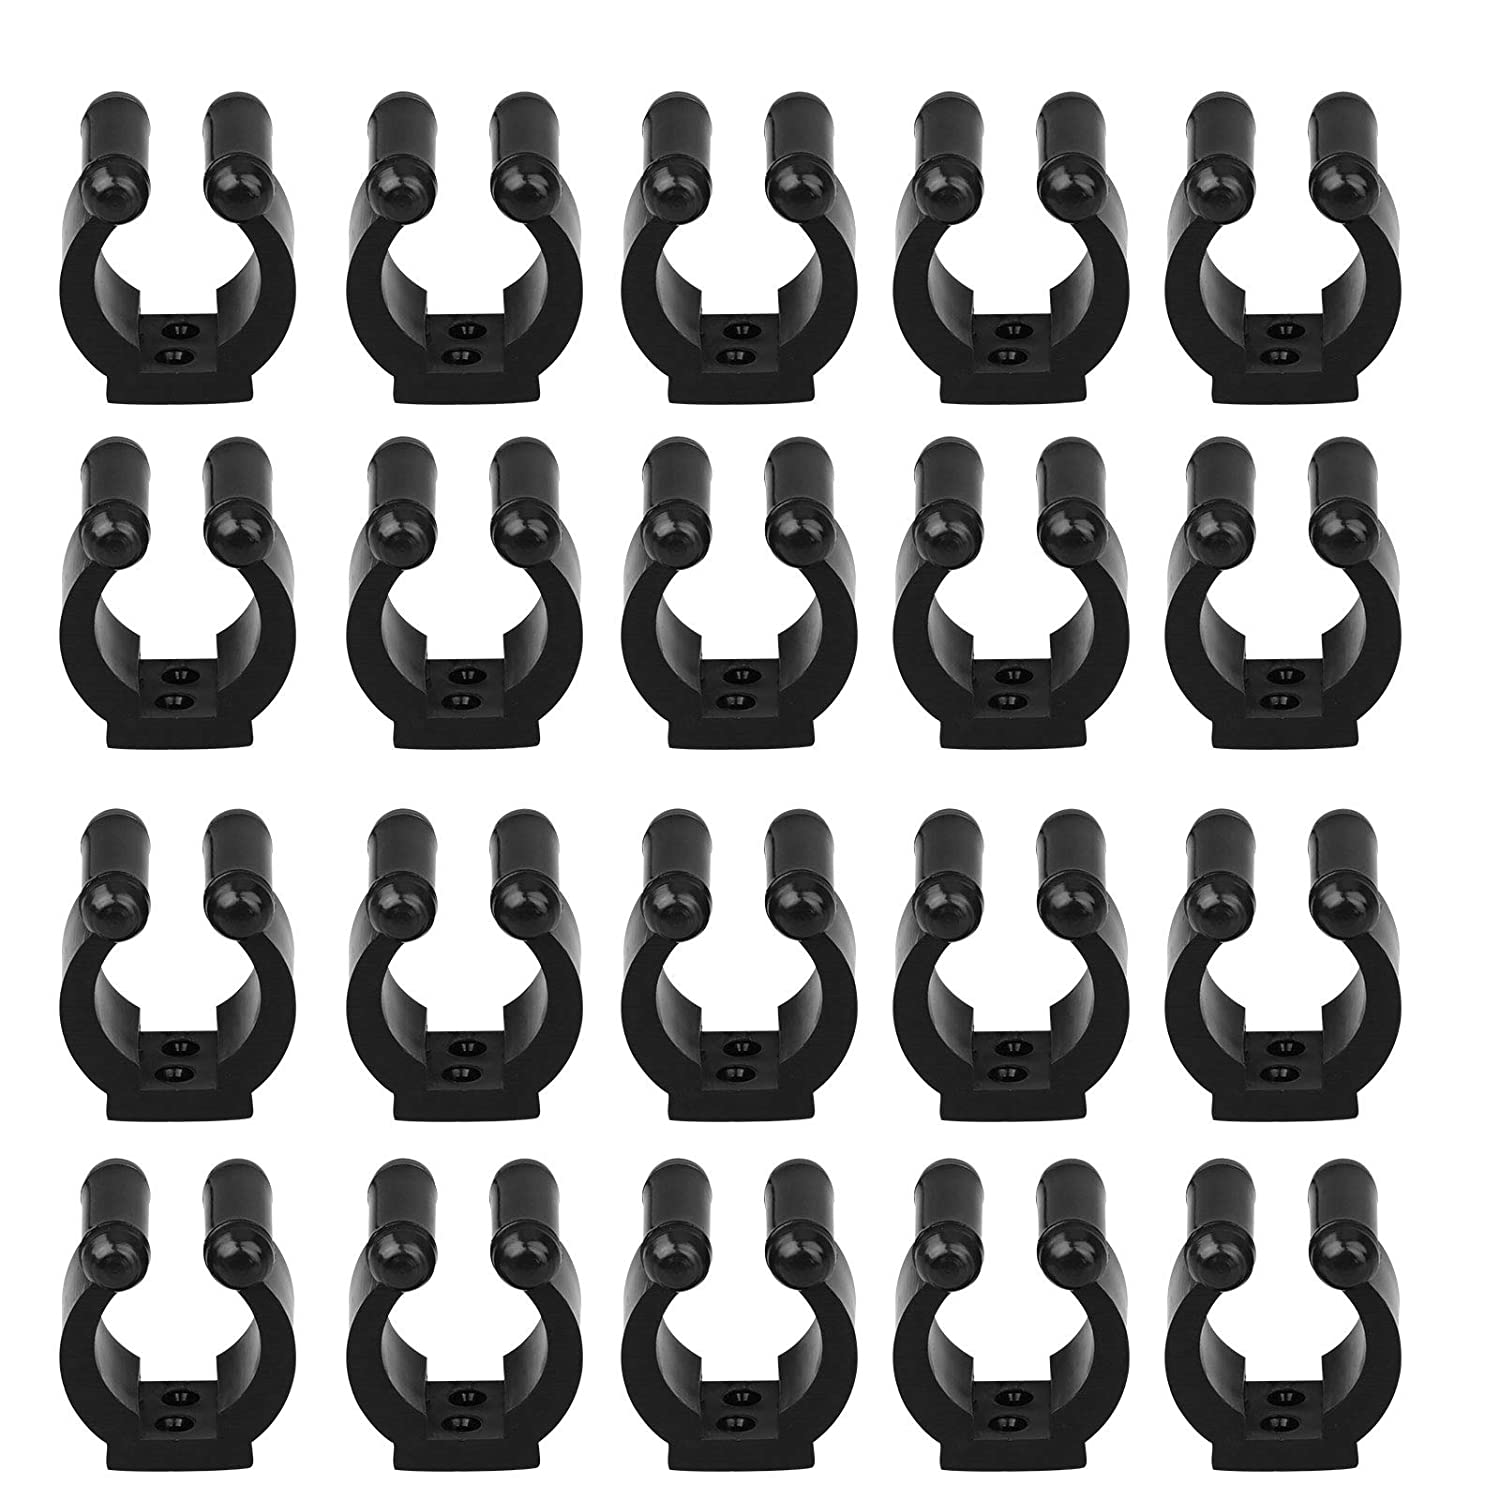 20-Pack Wall Mounted Fishing Rod Storage Clips Clamps Holder Rack Organizer